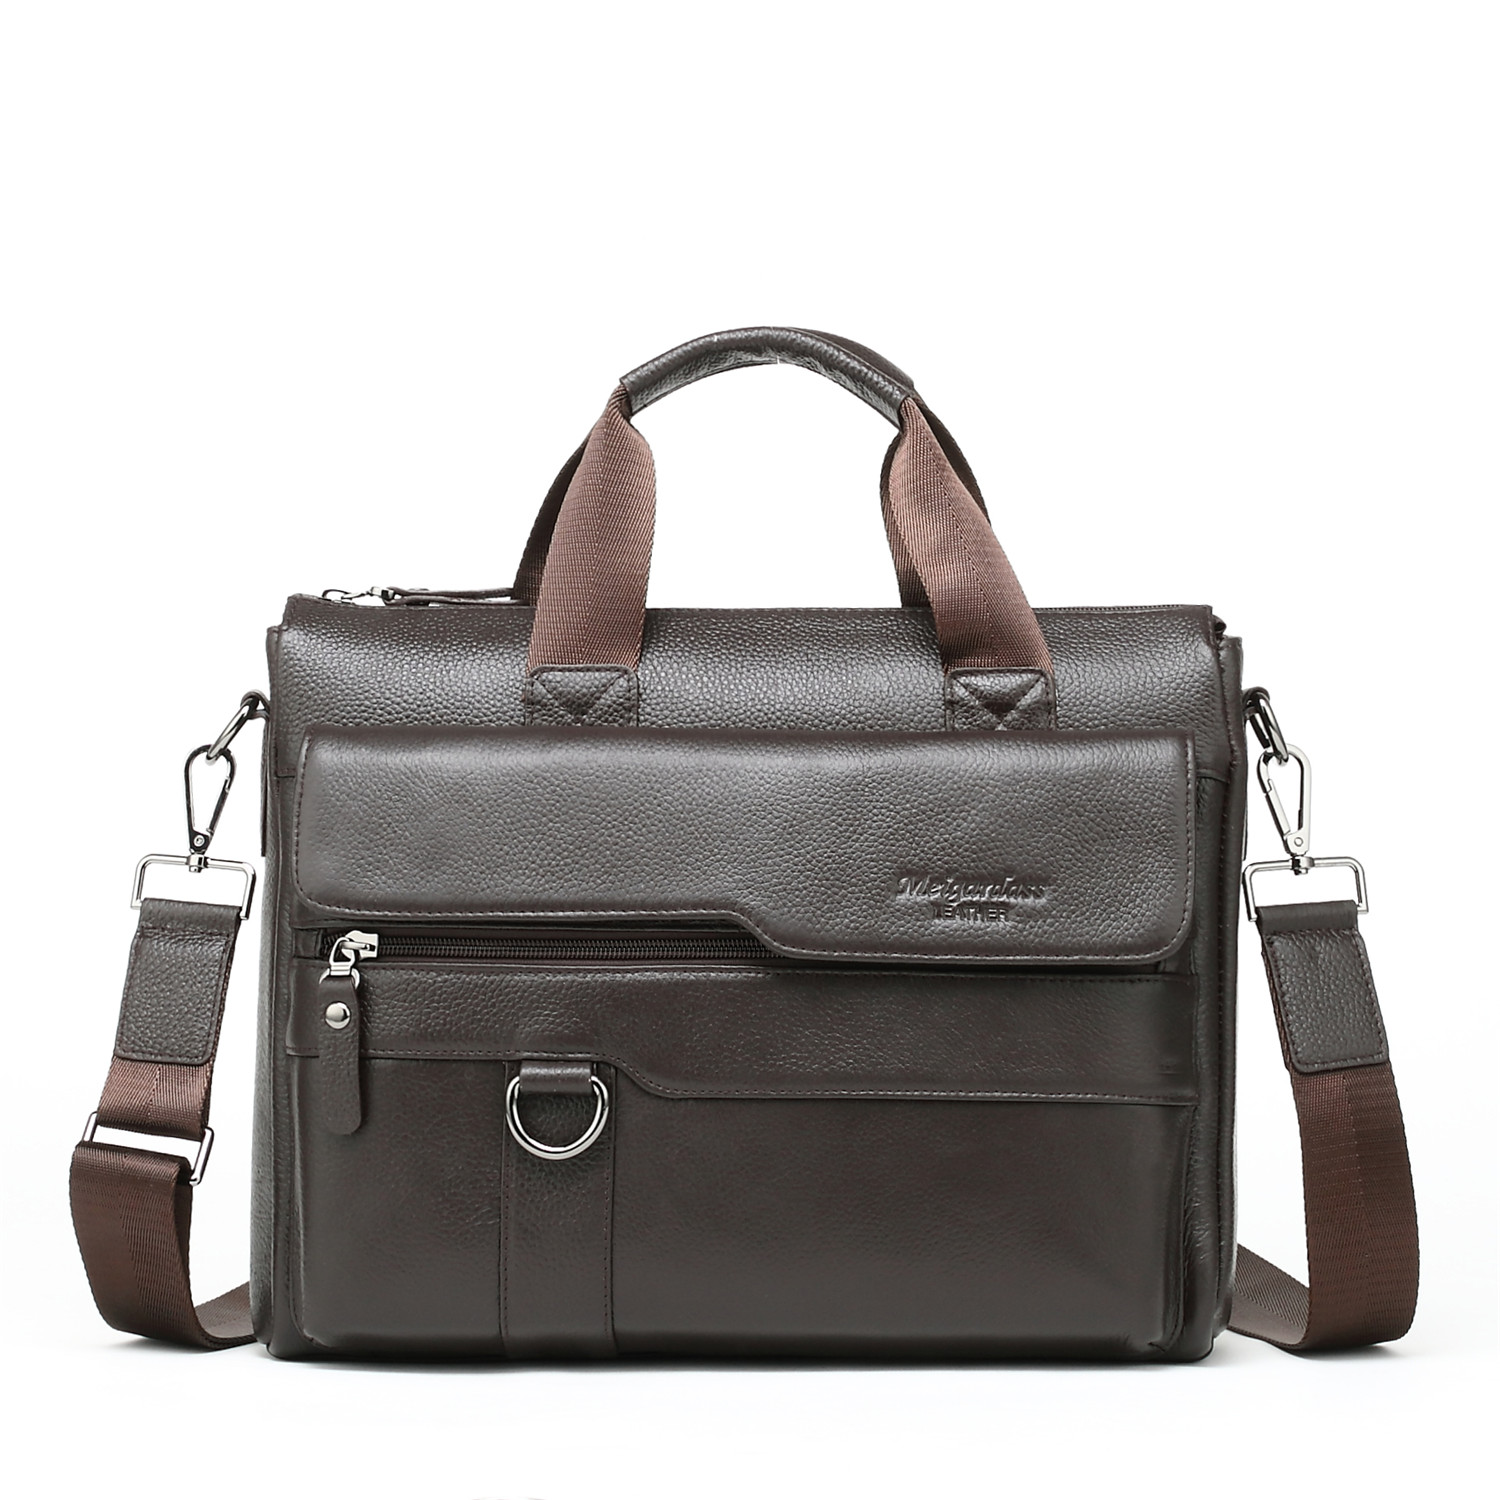 Norbinus Men Briefcases Genuine Leather Men's Bag Male Business Computer Laptop Document Crossbody Bags Messenger Bag Totes